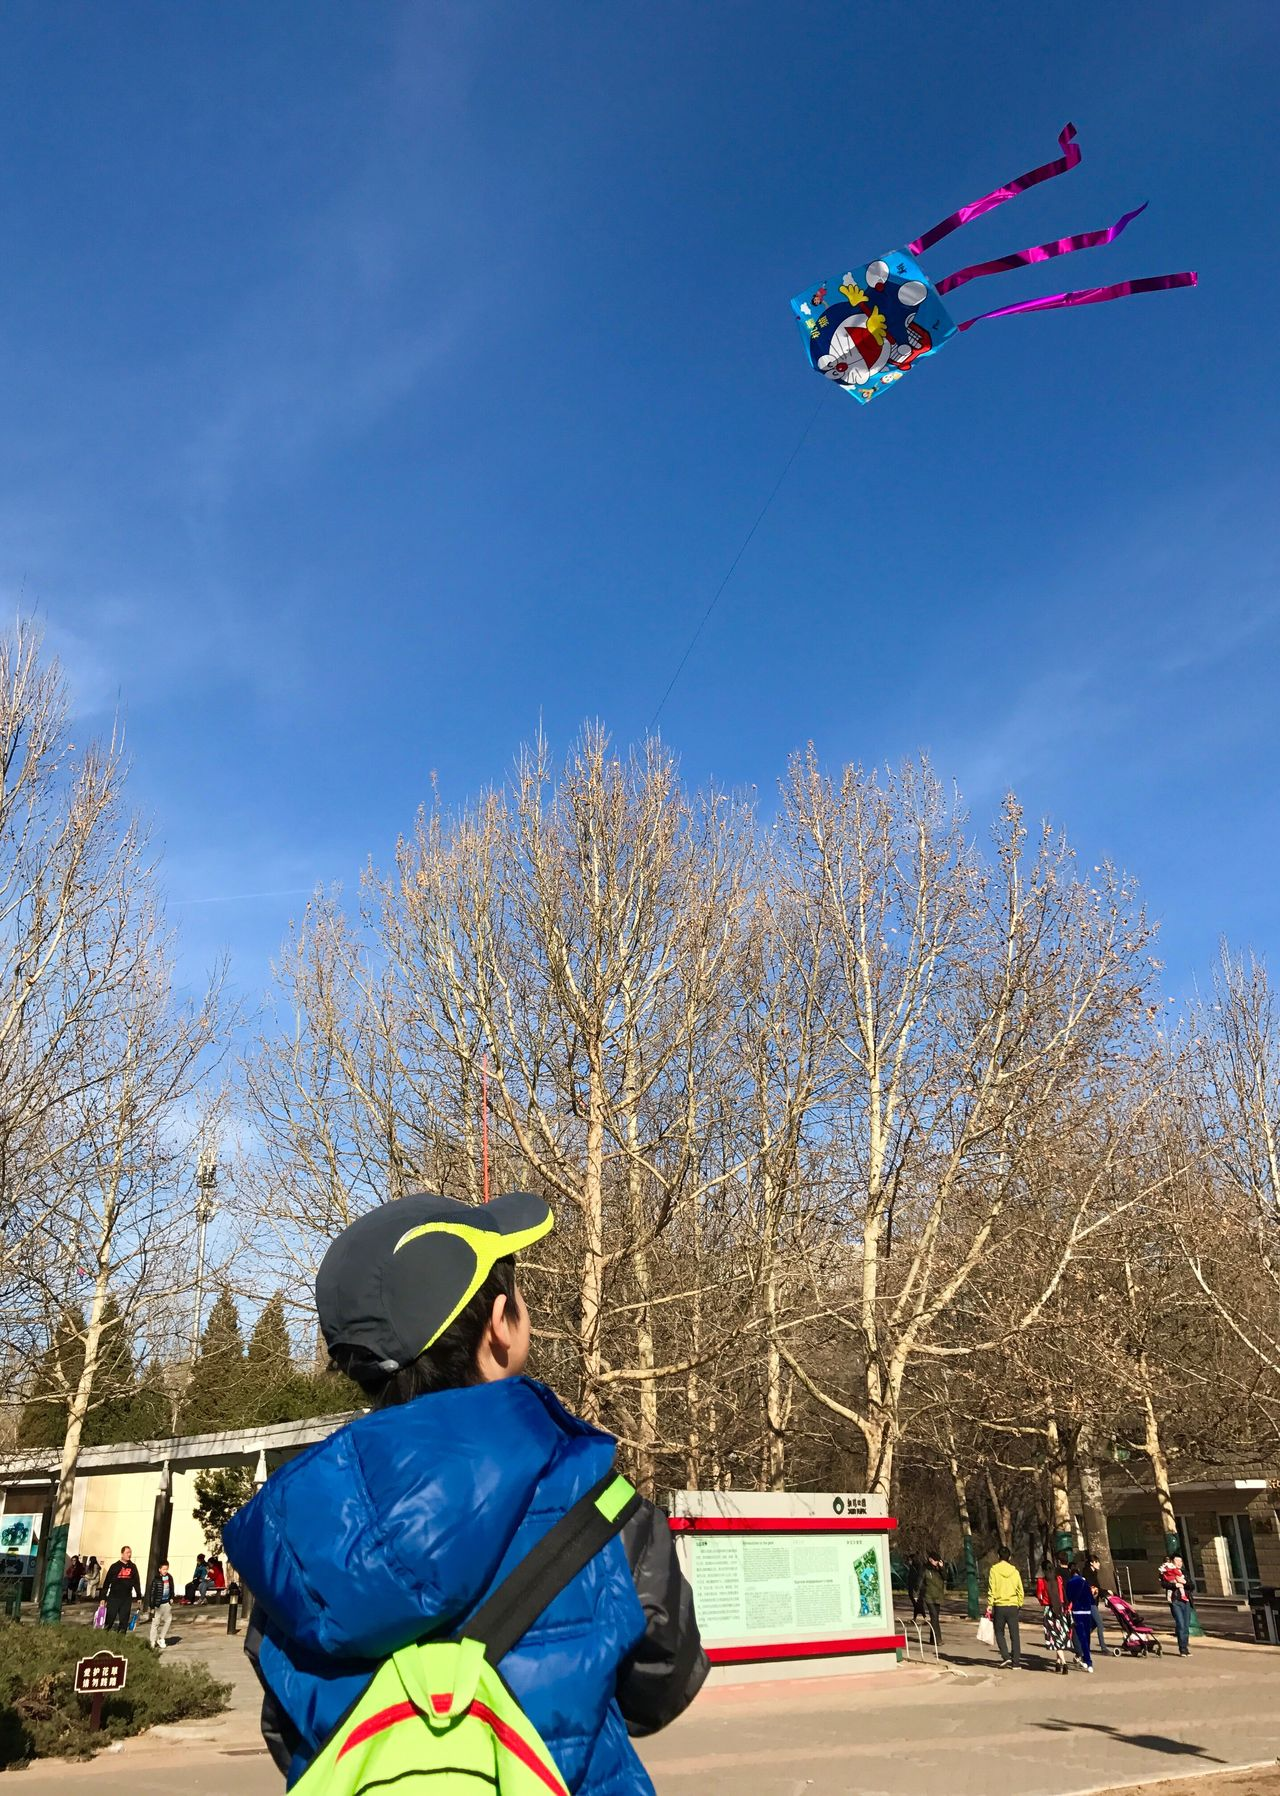 Flying High Free Time In The Park Blue Sky Flying Kites Leisure Activity Outdoors Sunny Day